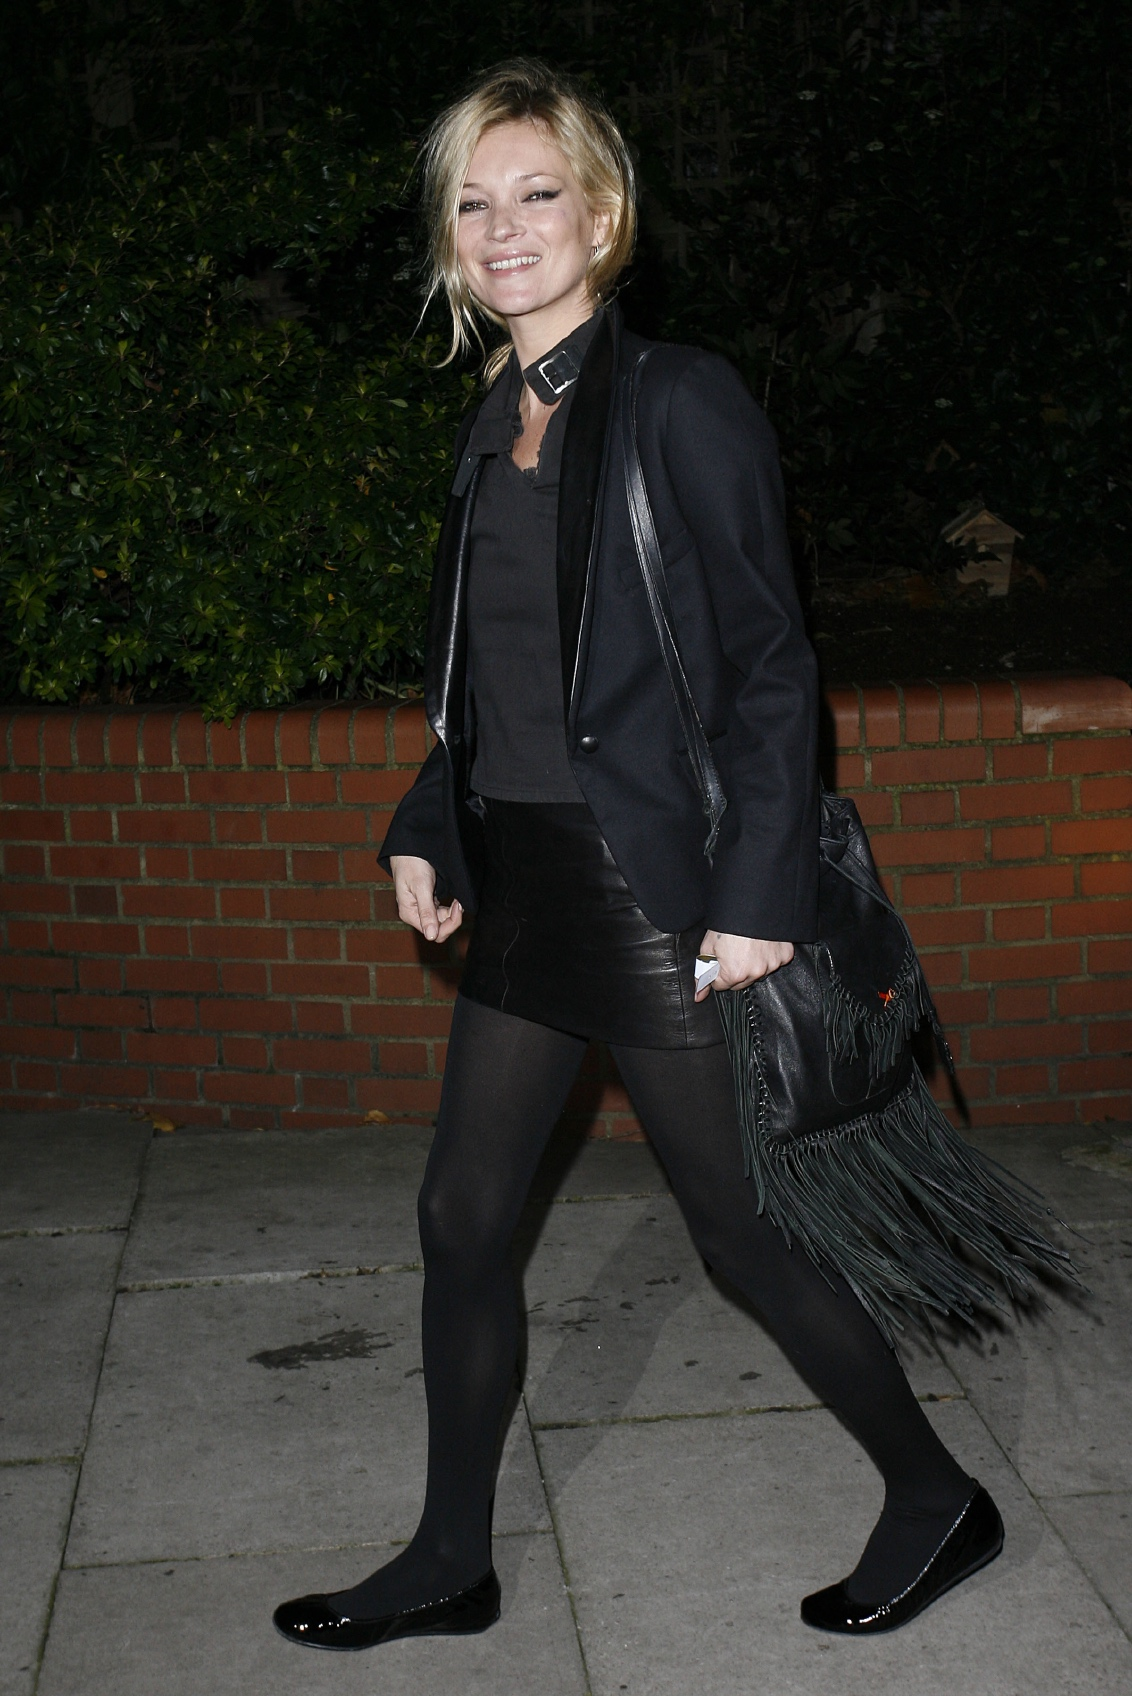 Model Kate Moss arrives at the SingStar Take That Extravaganza on November 25, 2009 in London, England. image: neil mockford/getty Images)